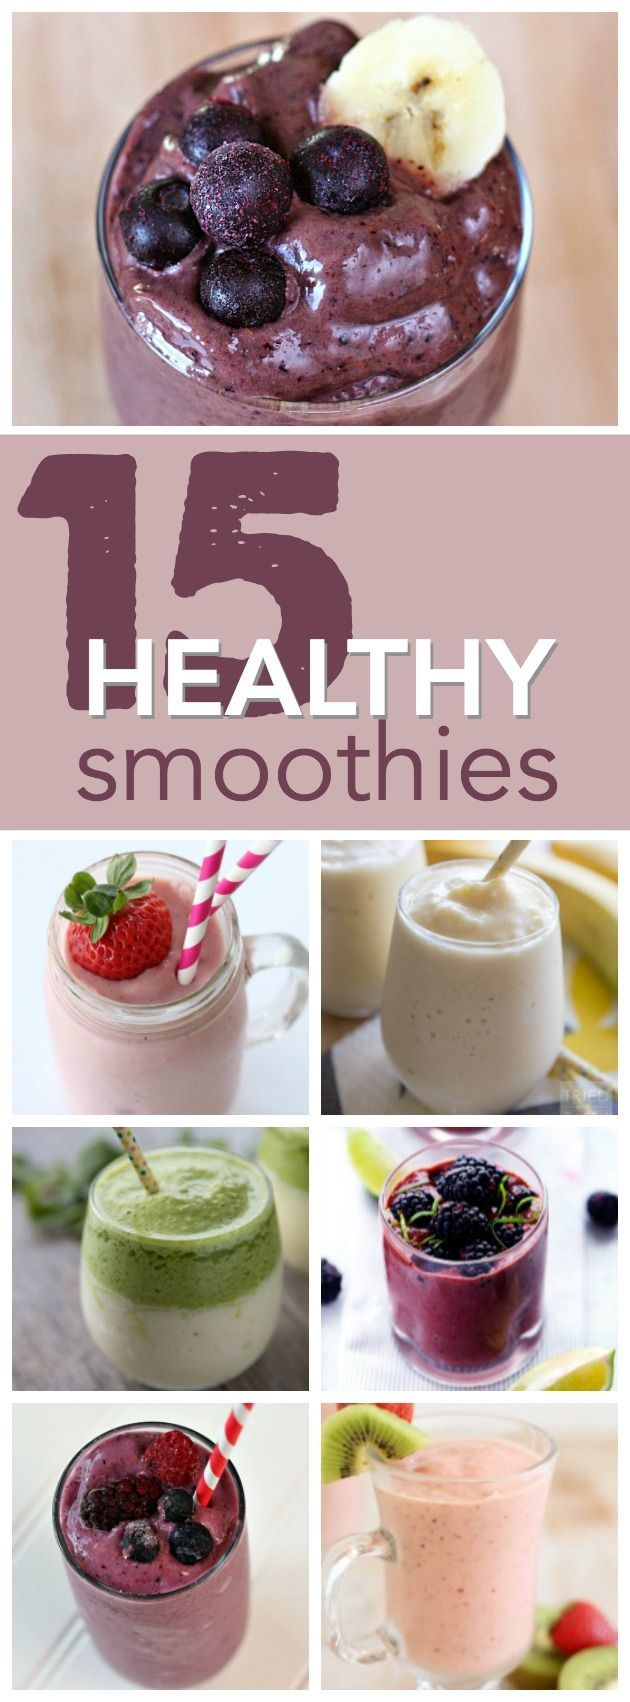 15 Healthy and Delicious Smoothie Recipes from SixSistersStuff.com | Fast Breakfast Ideas | Kid Approved Snacks | Healthy Breakfst